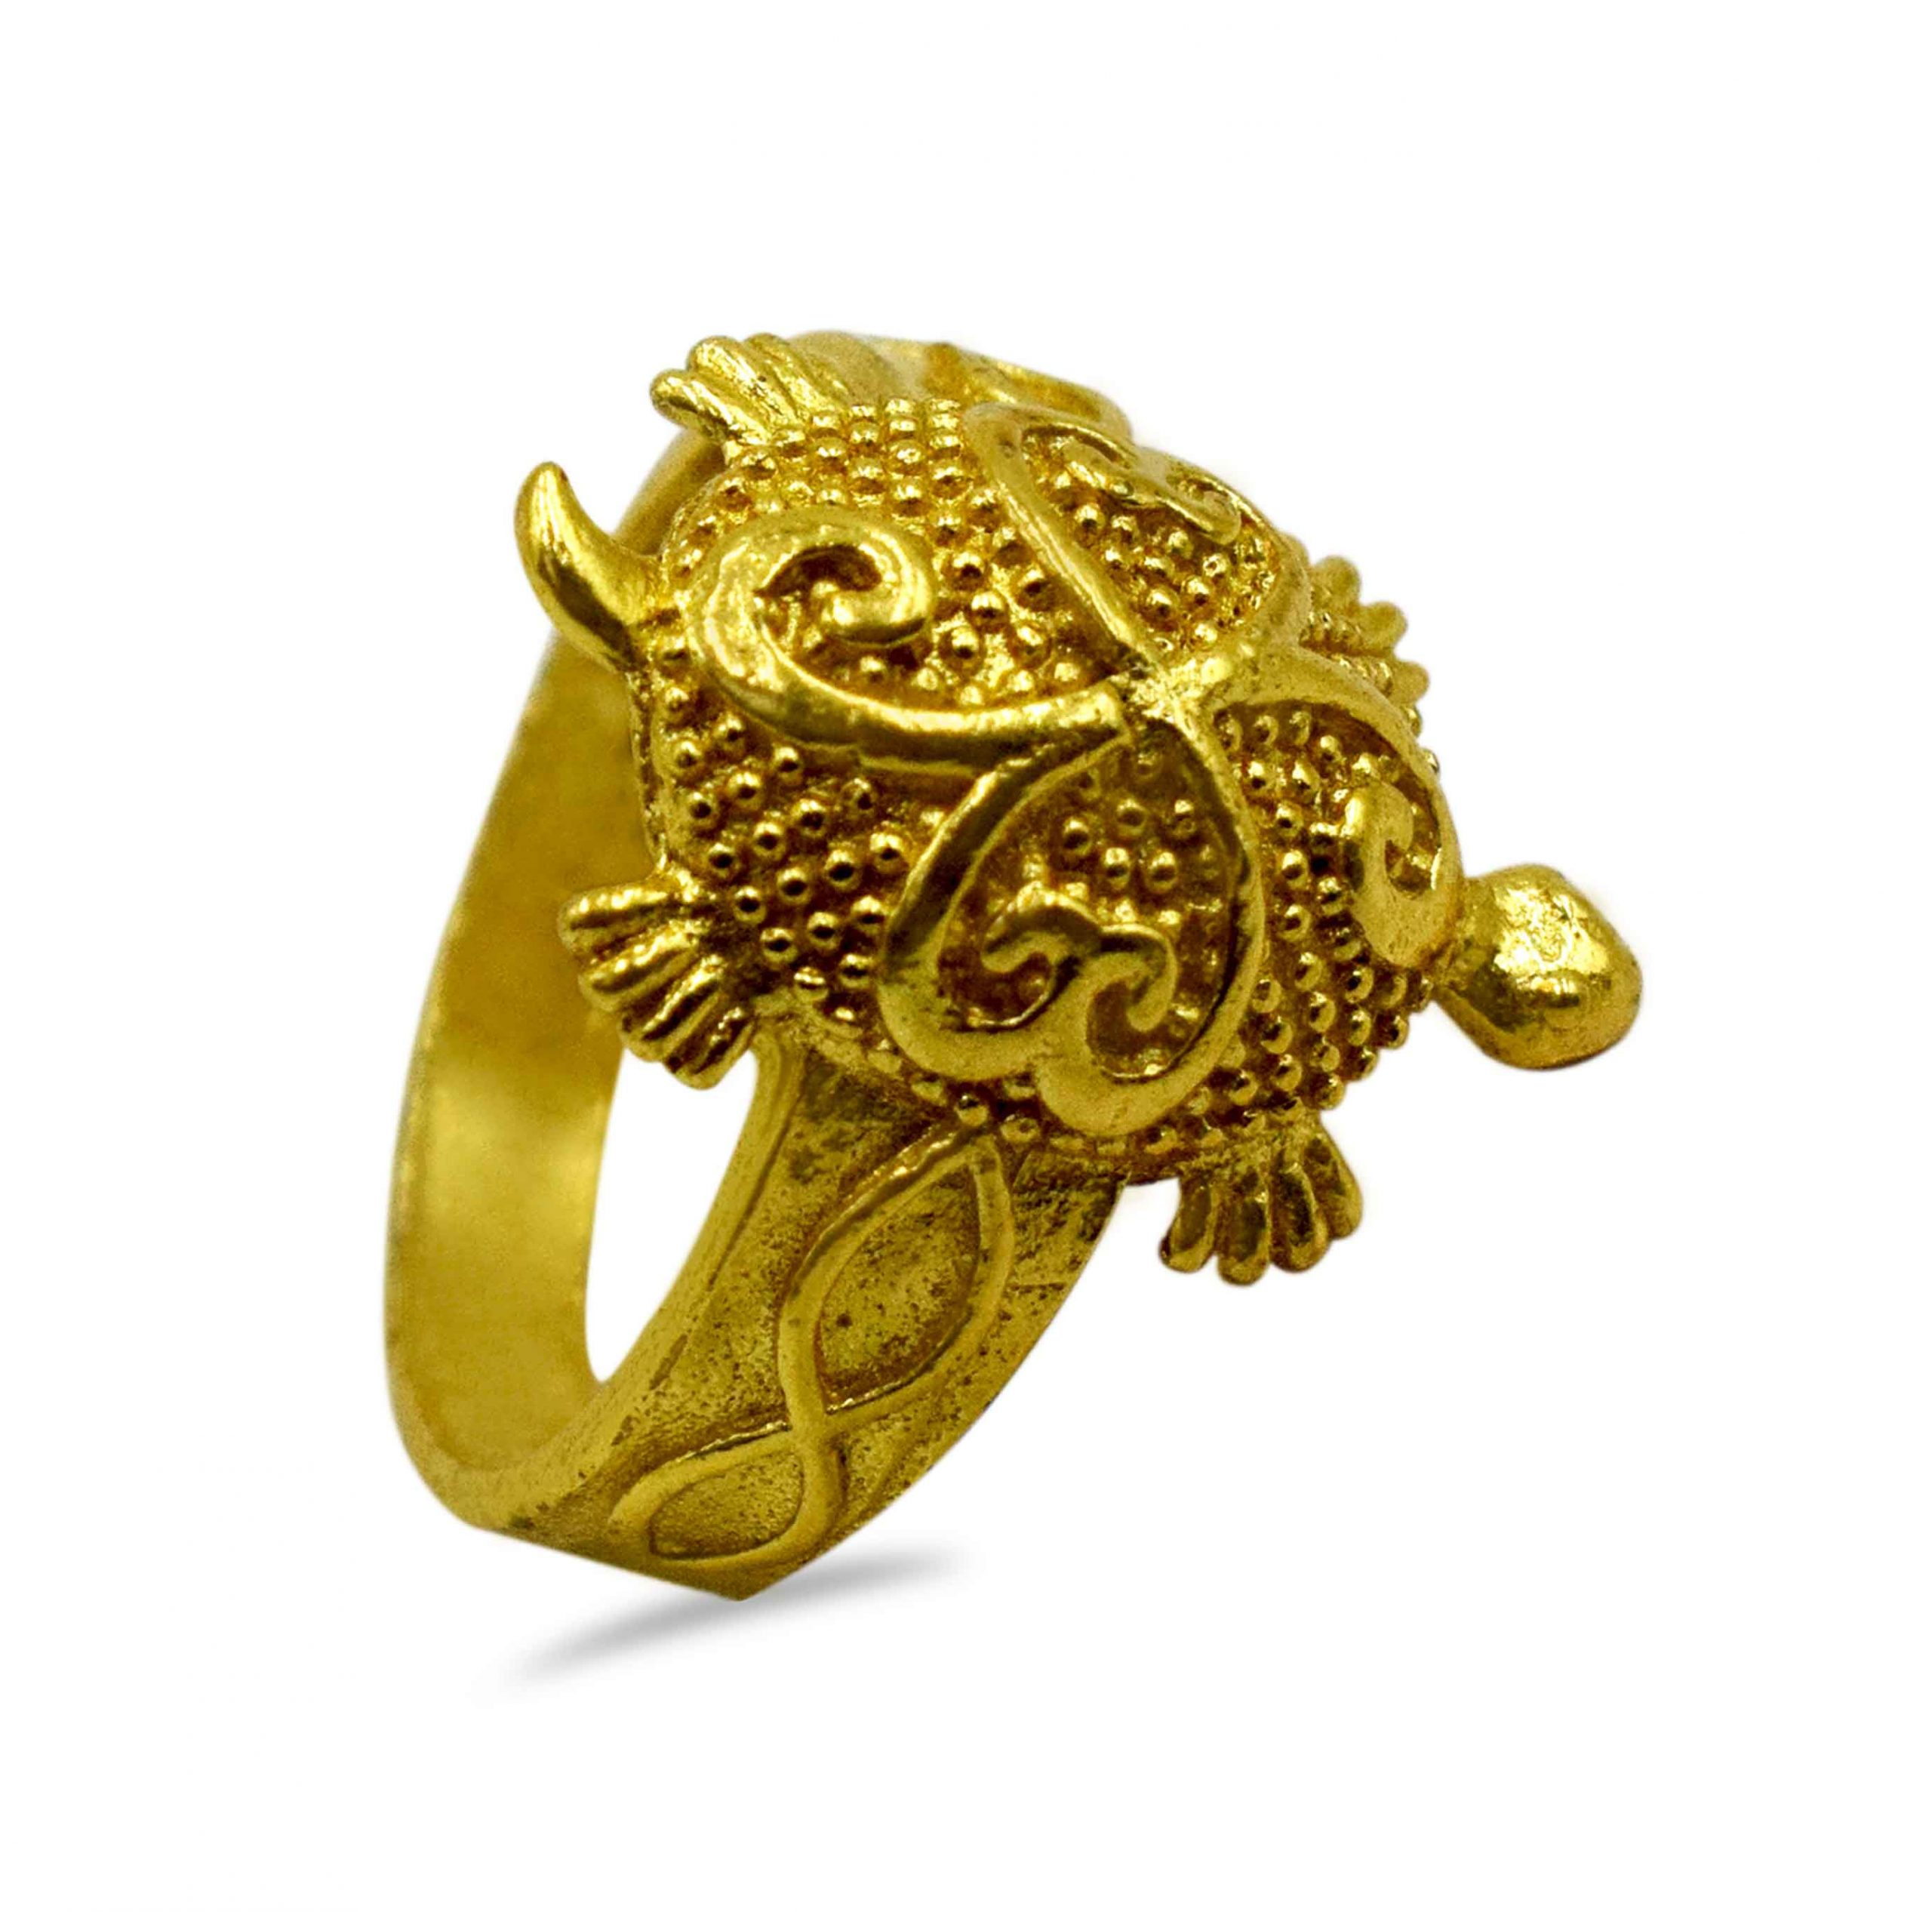 Buy Original Meru Ring (Tortoise Ring) Online